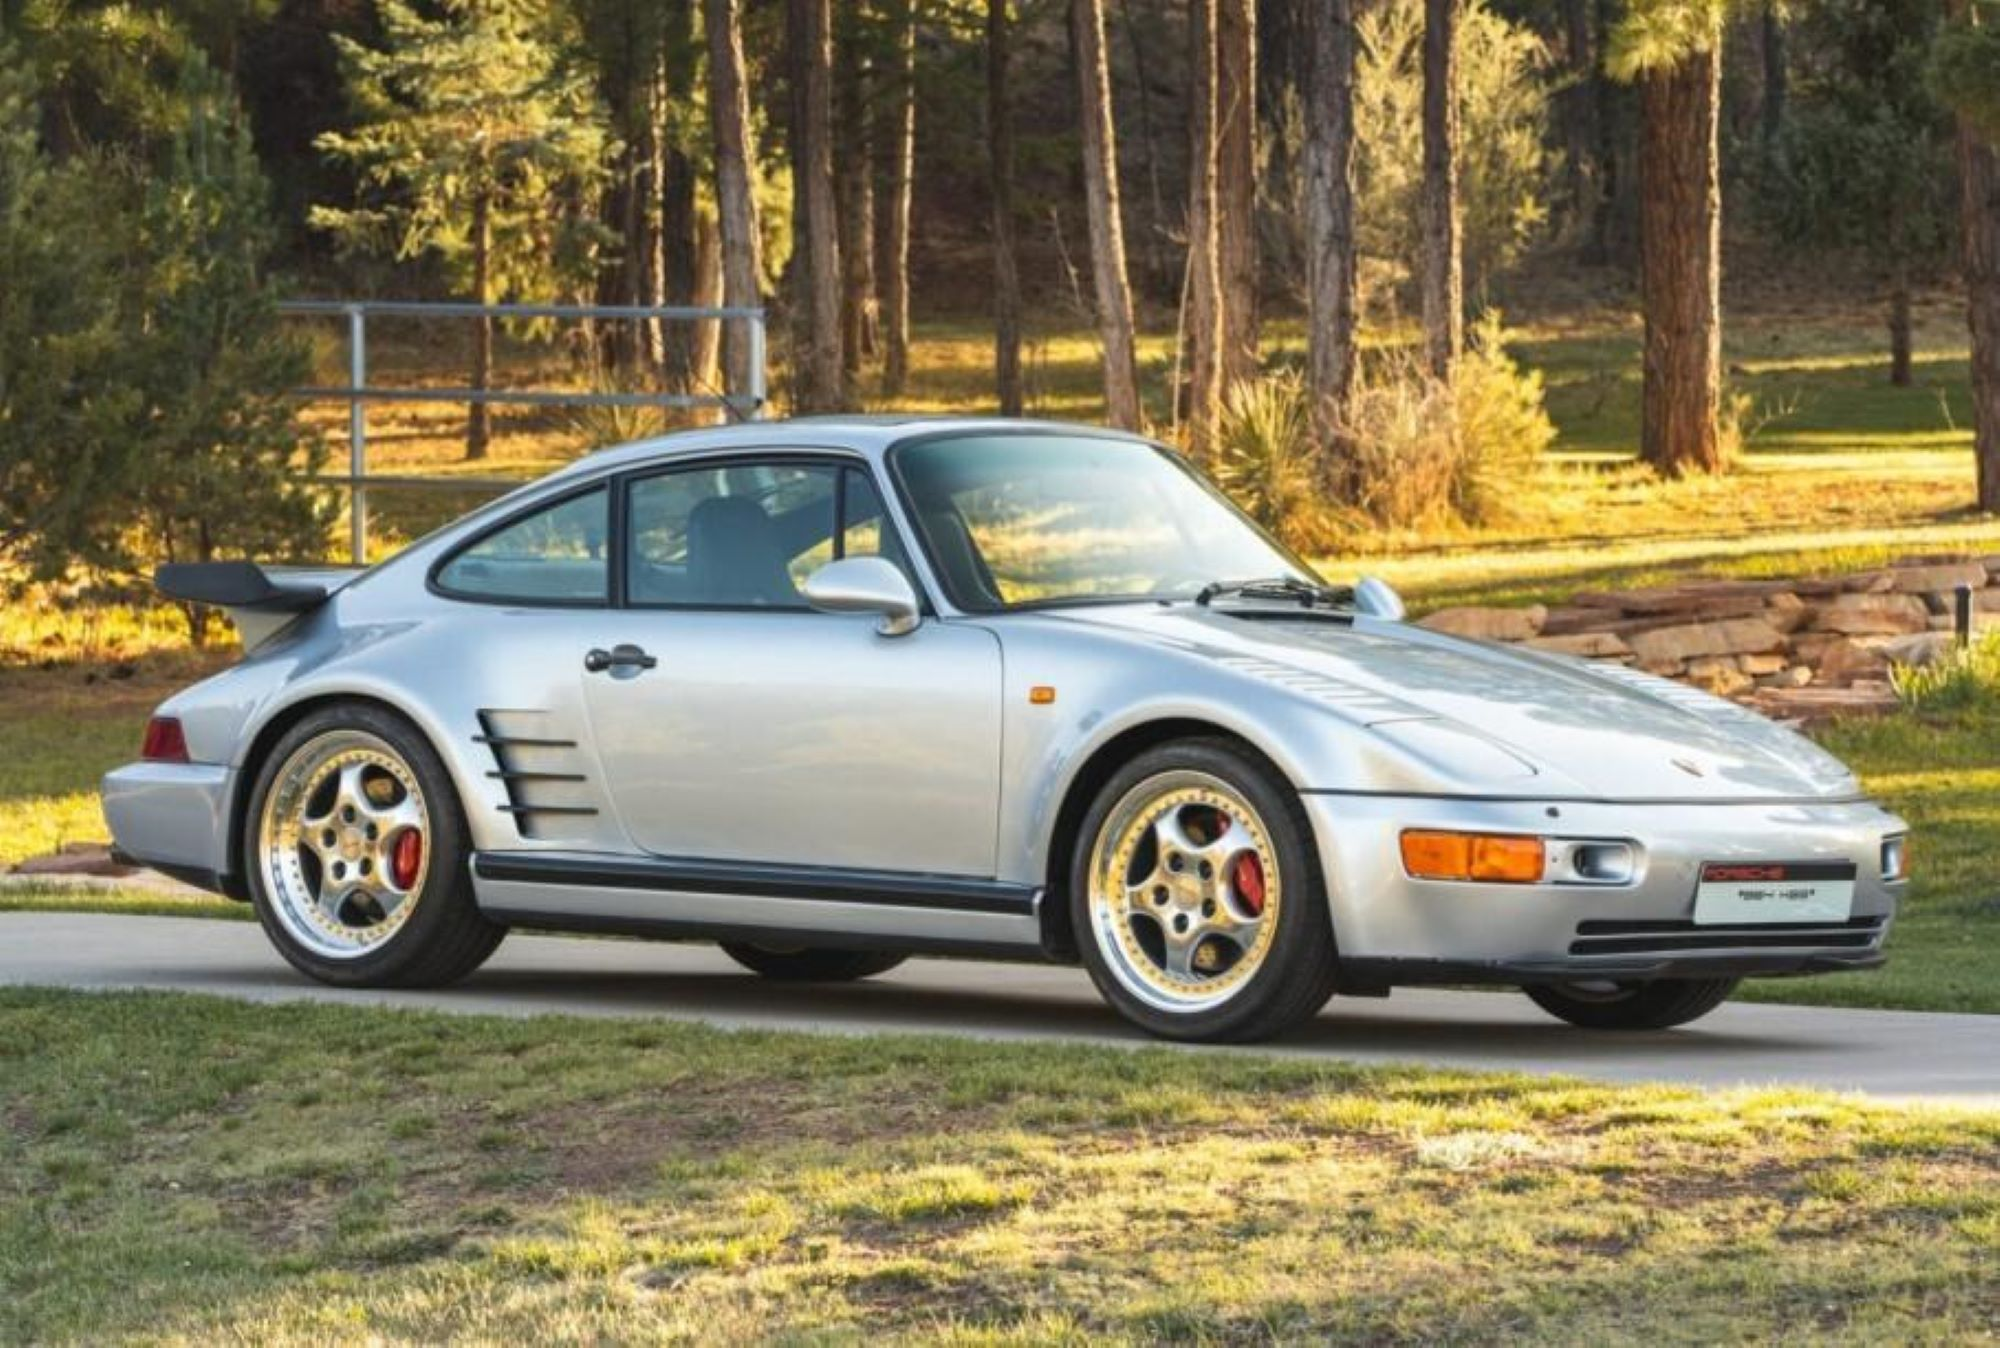 Rare Porsche 911 to be auctioned in USA